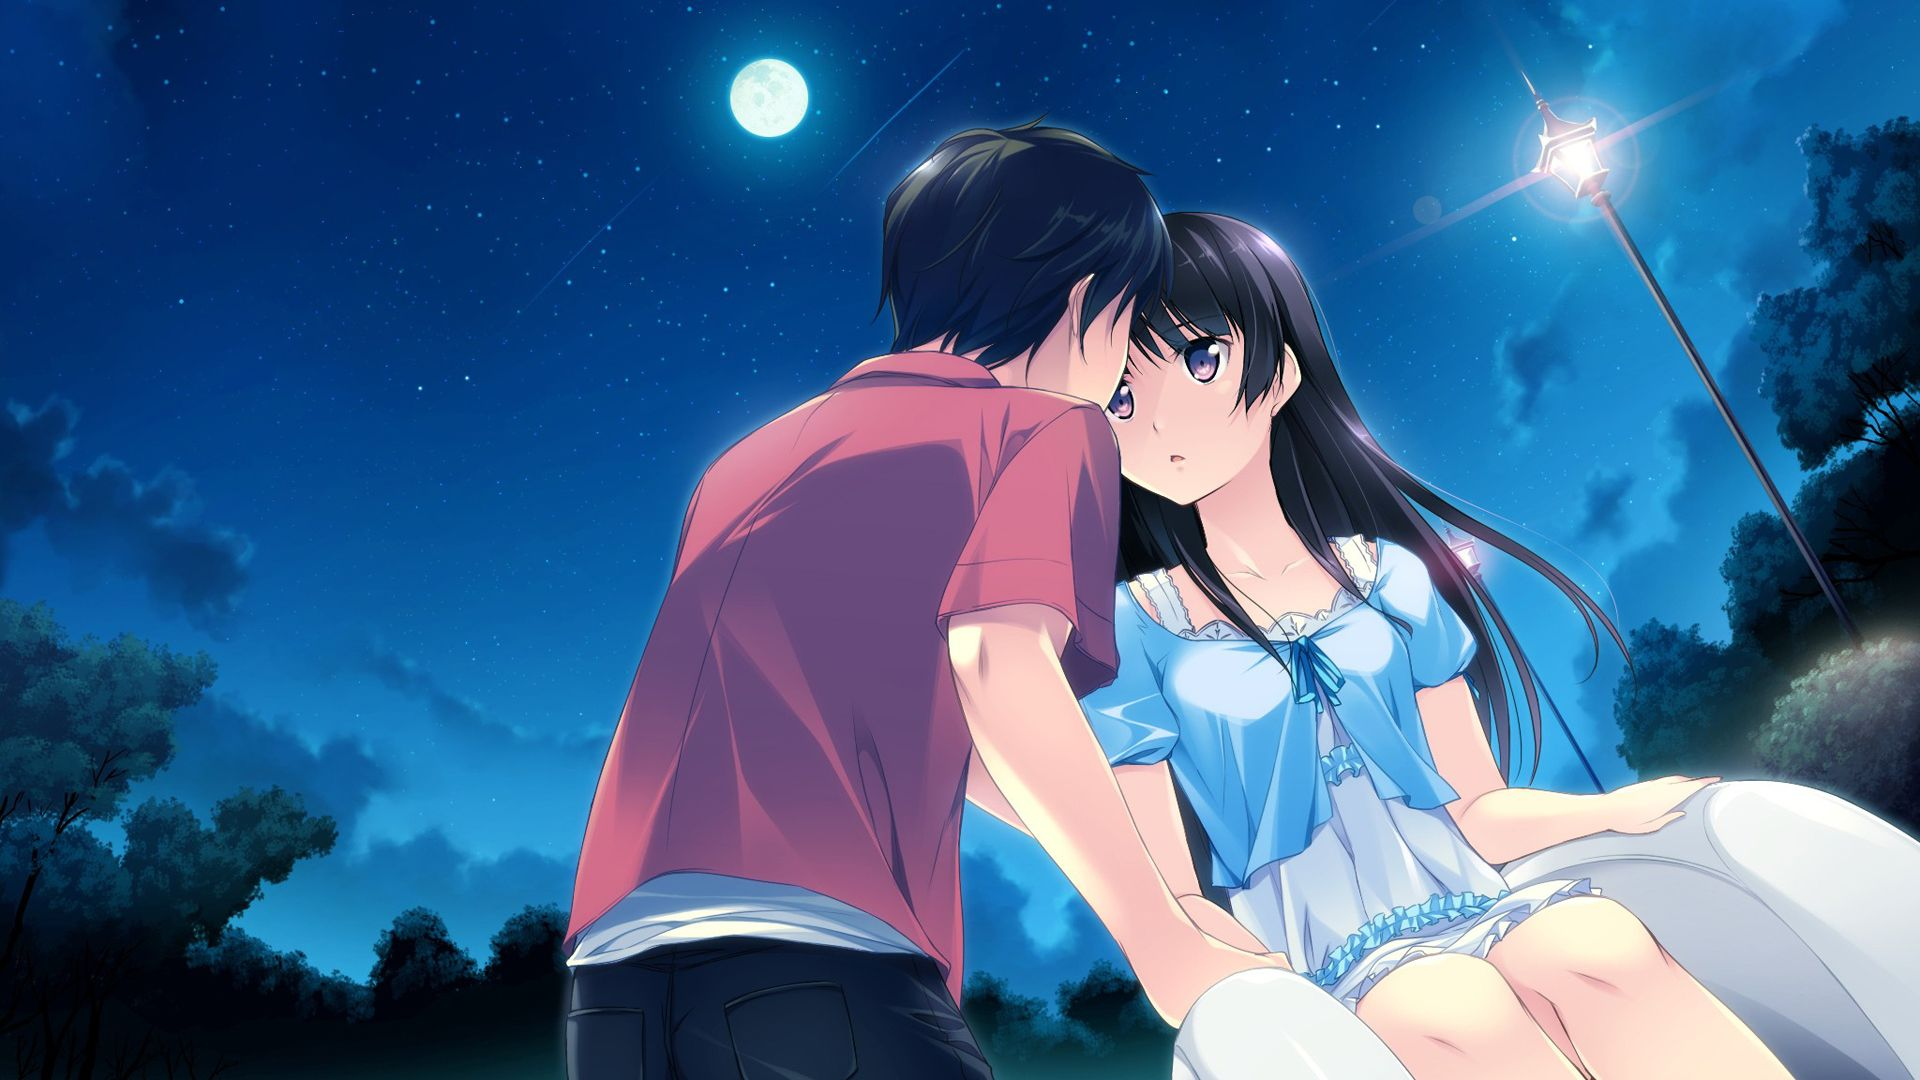 Download Valentines Anime Wallpaper 1920x1080 Full HD Wallpapers anime Pinterest Anime ...